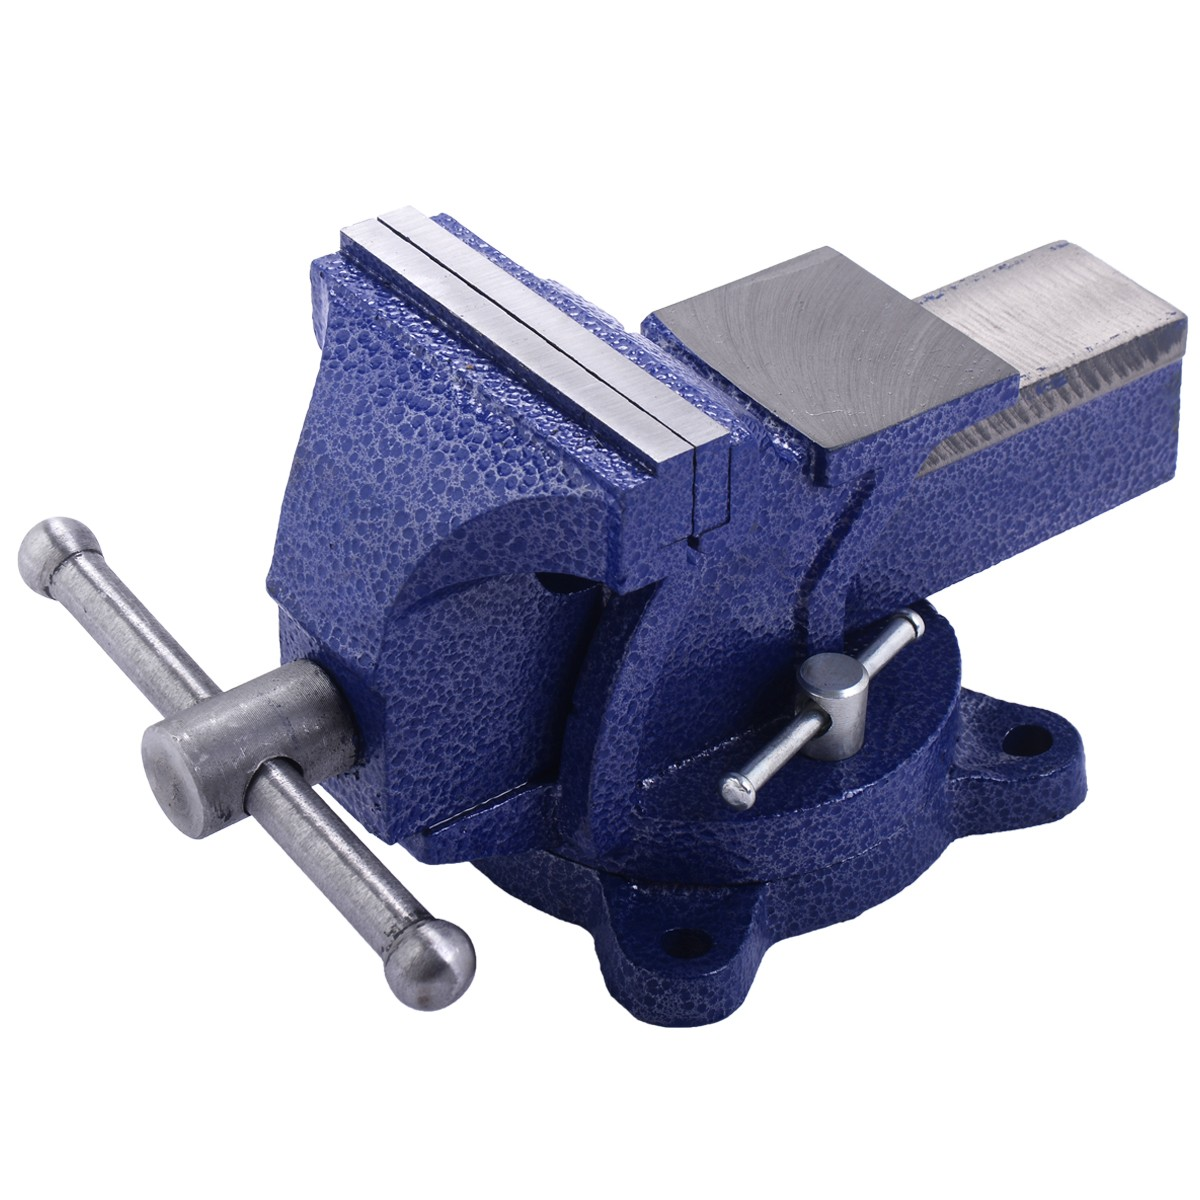 4 034 Mechanic Bench Vise Table Top Clamp Press Locking